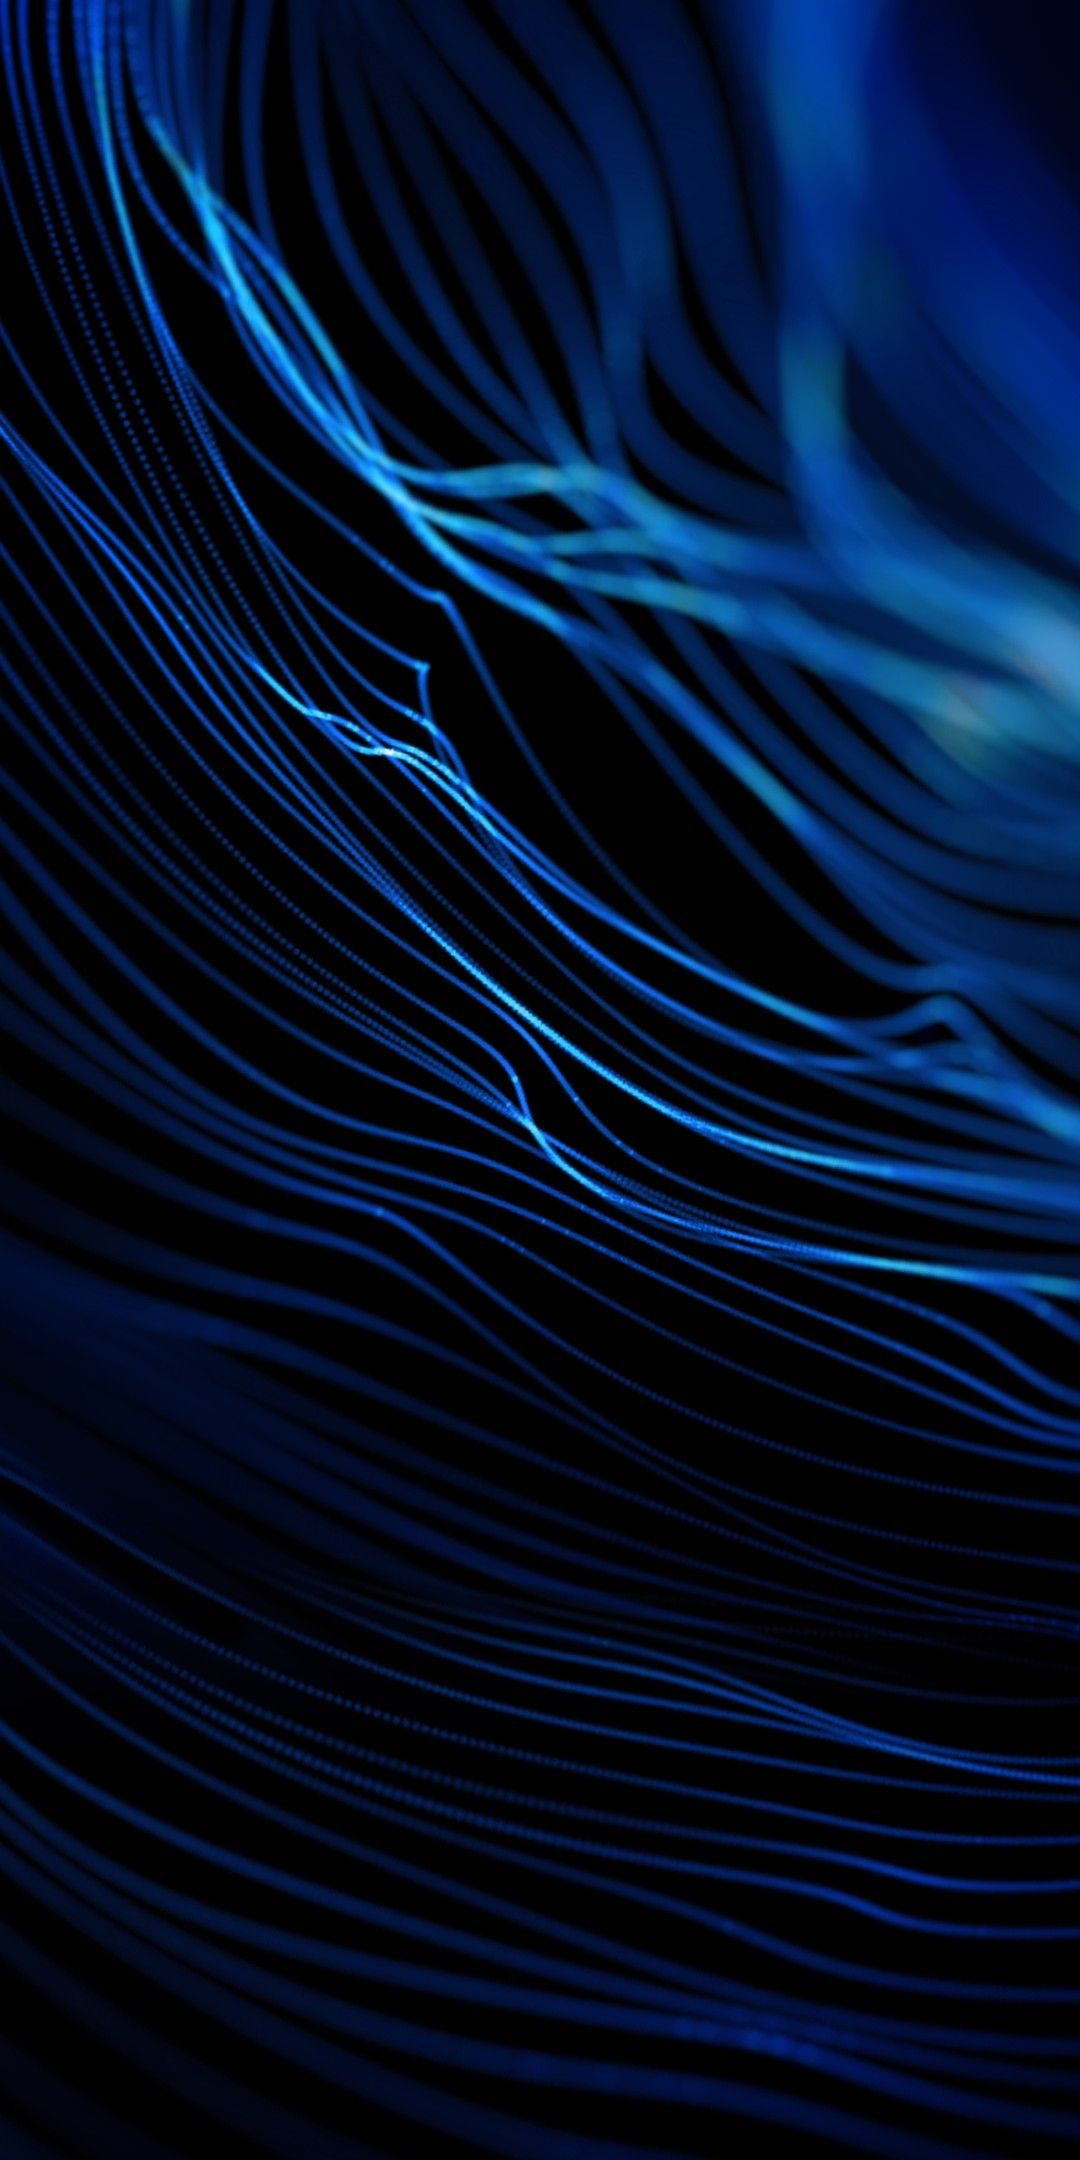 Pin By Sheiky Bryan On Abstract Amoled Liquid Gradient Graphic Wallpaper Samsung Wallpaper Apple Wallpaper